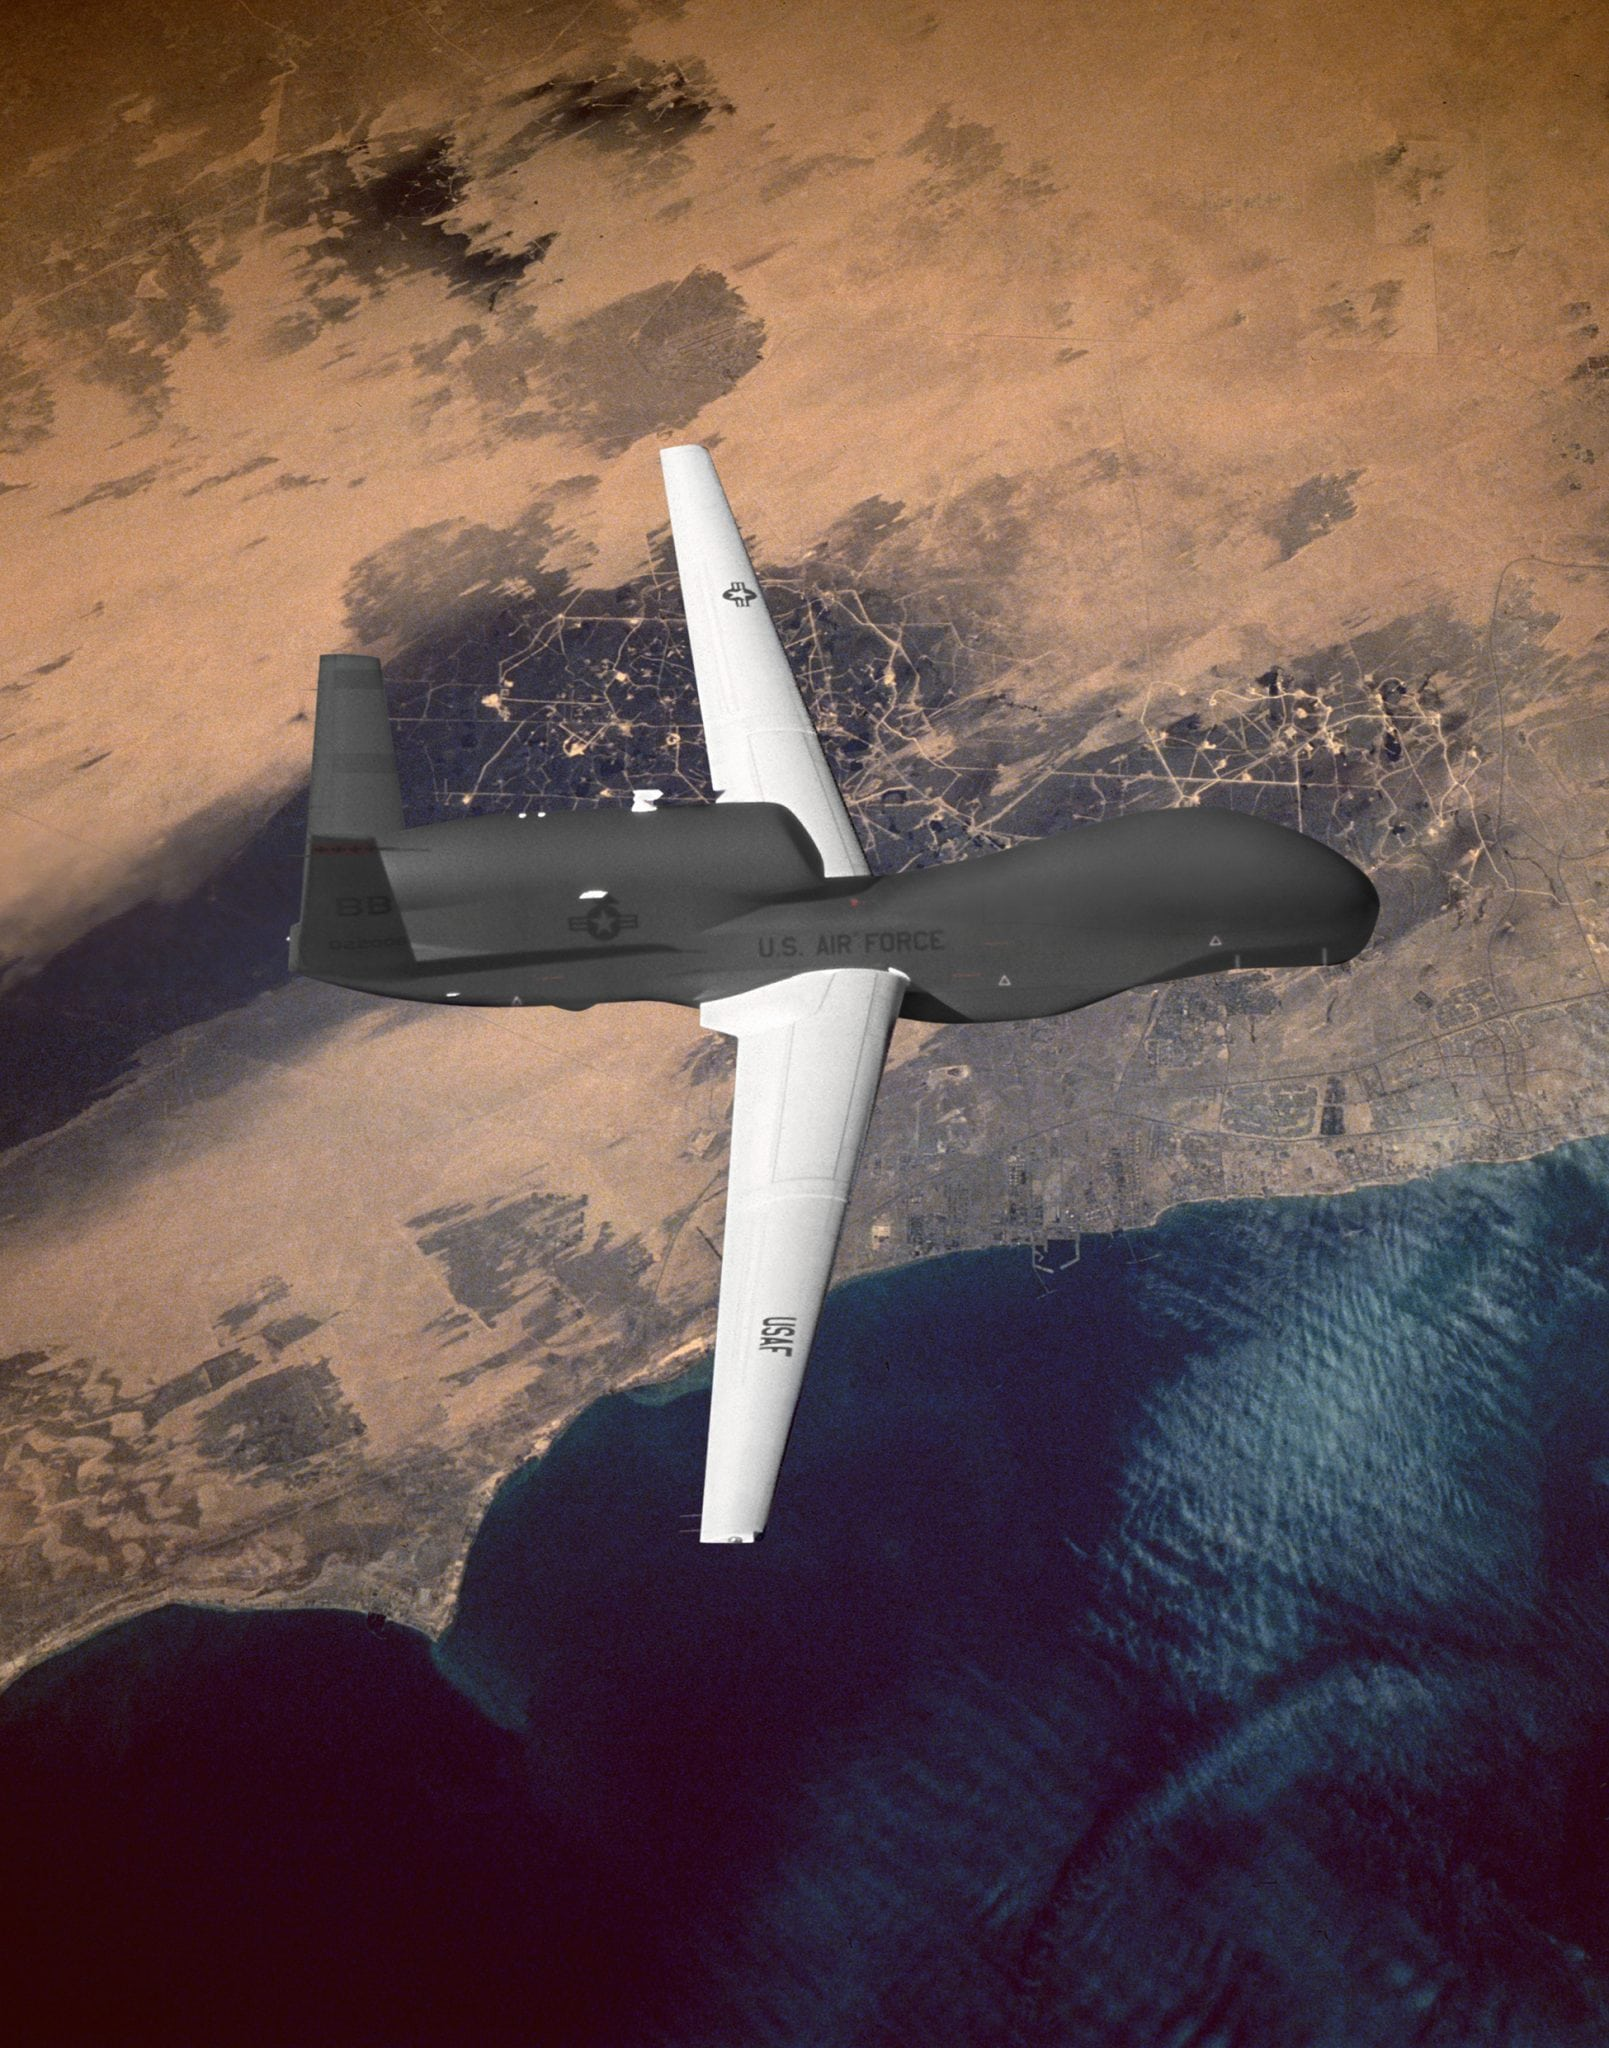 Global Hawk UAS in flight